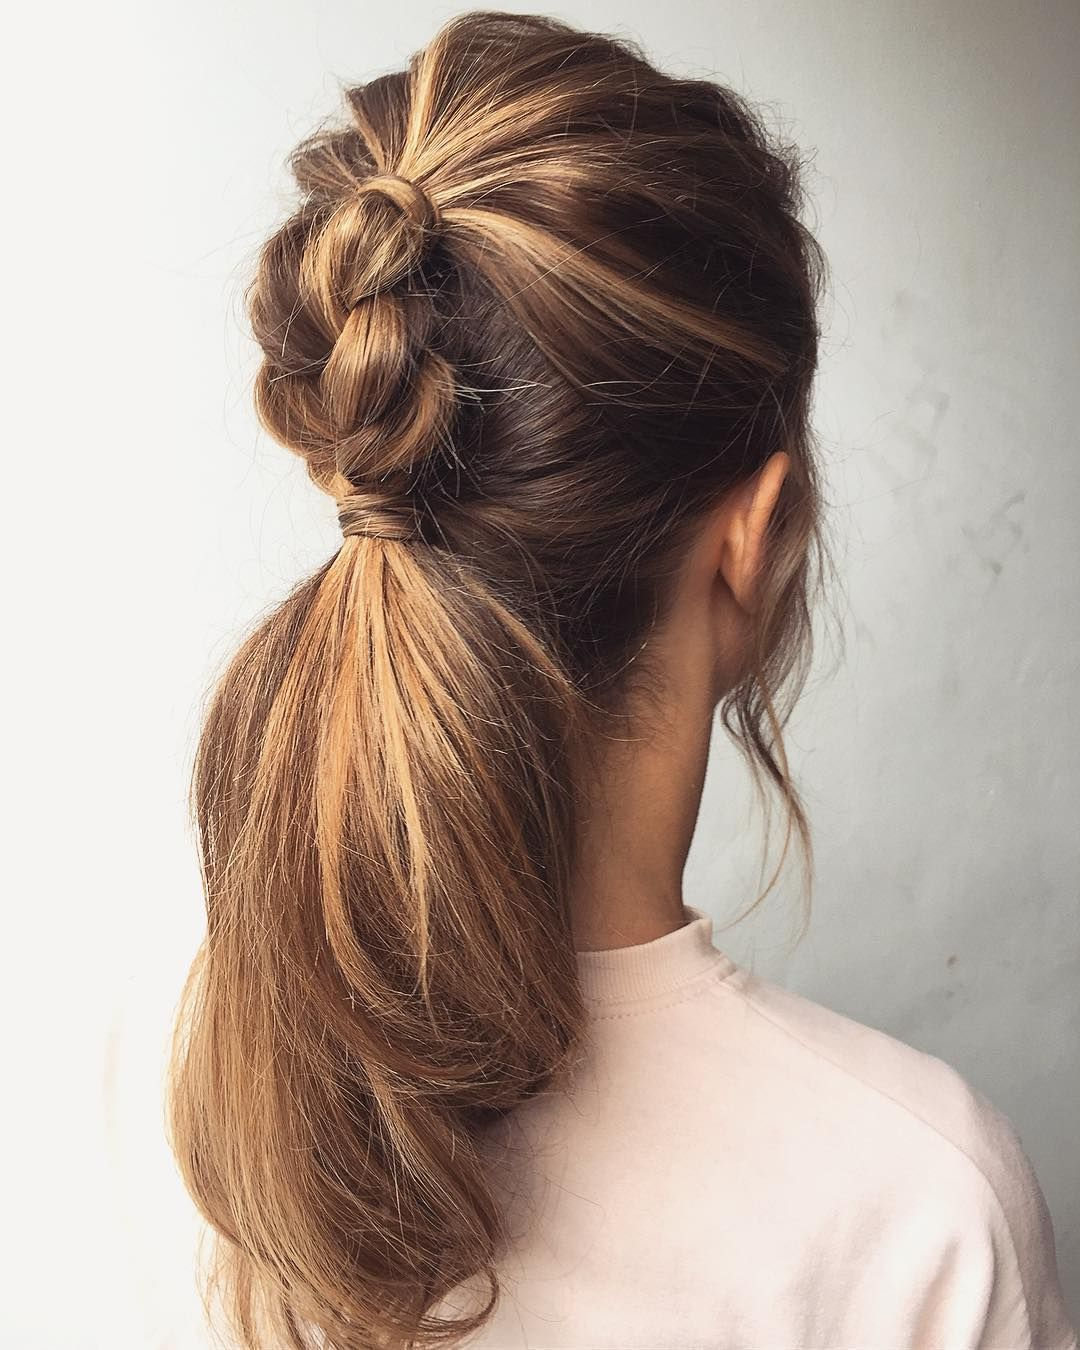 Braided ponytail : Featured hairstyle inspiration - Michael Gray Hair #hairstyle #braids #hair #weddinghairstyle #Hairstyle #Braid #BraidIdeas #BraidInspo #BraidedHair #Braidstyles